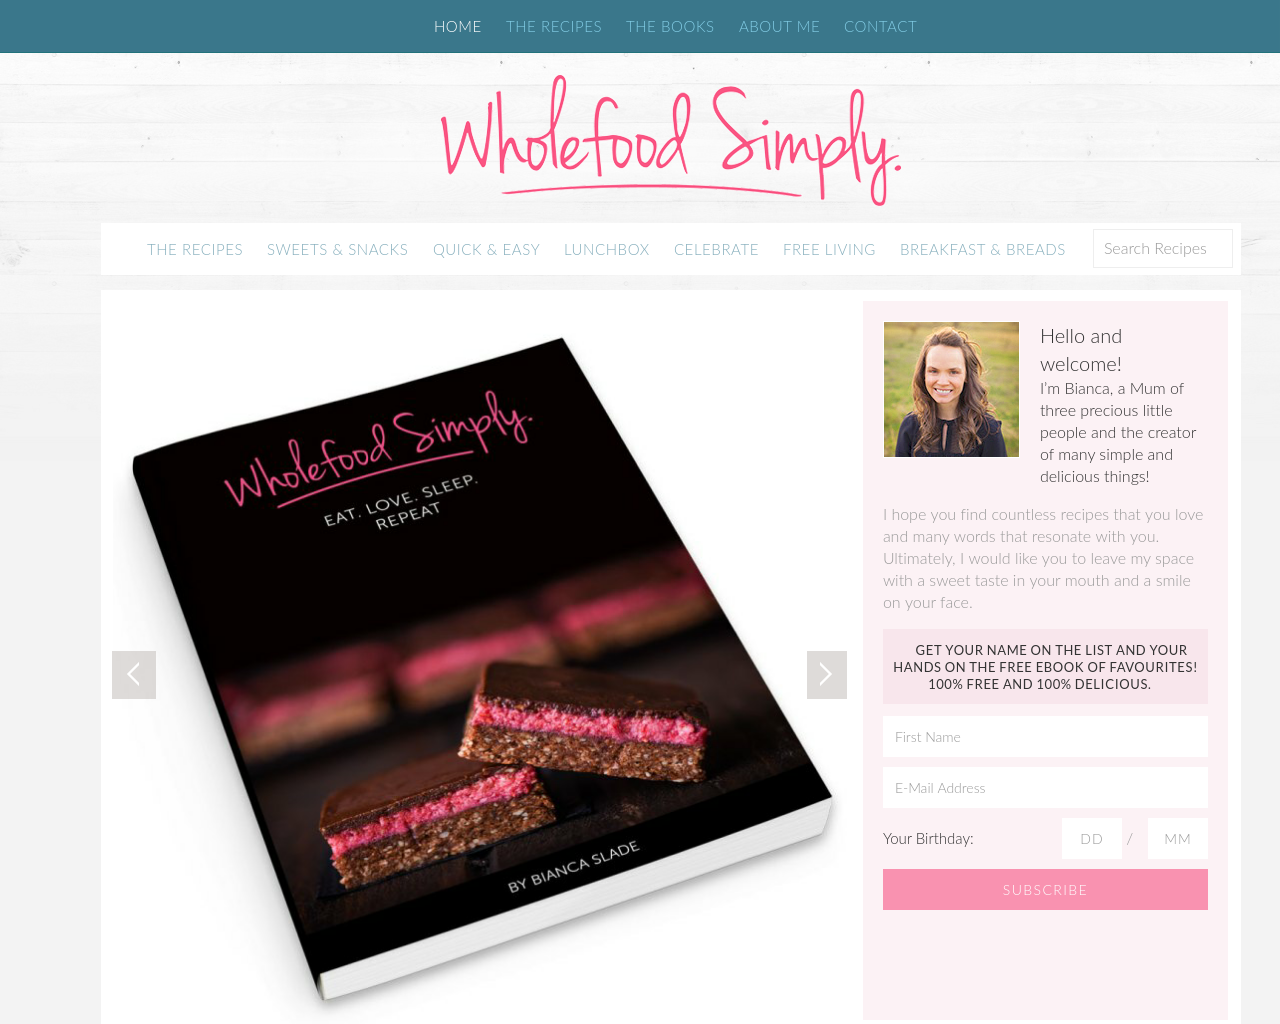 Wholefood-Simply-Advertising-Reviews-Pricing